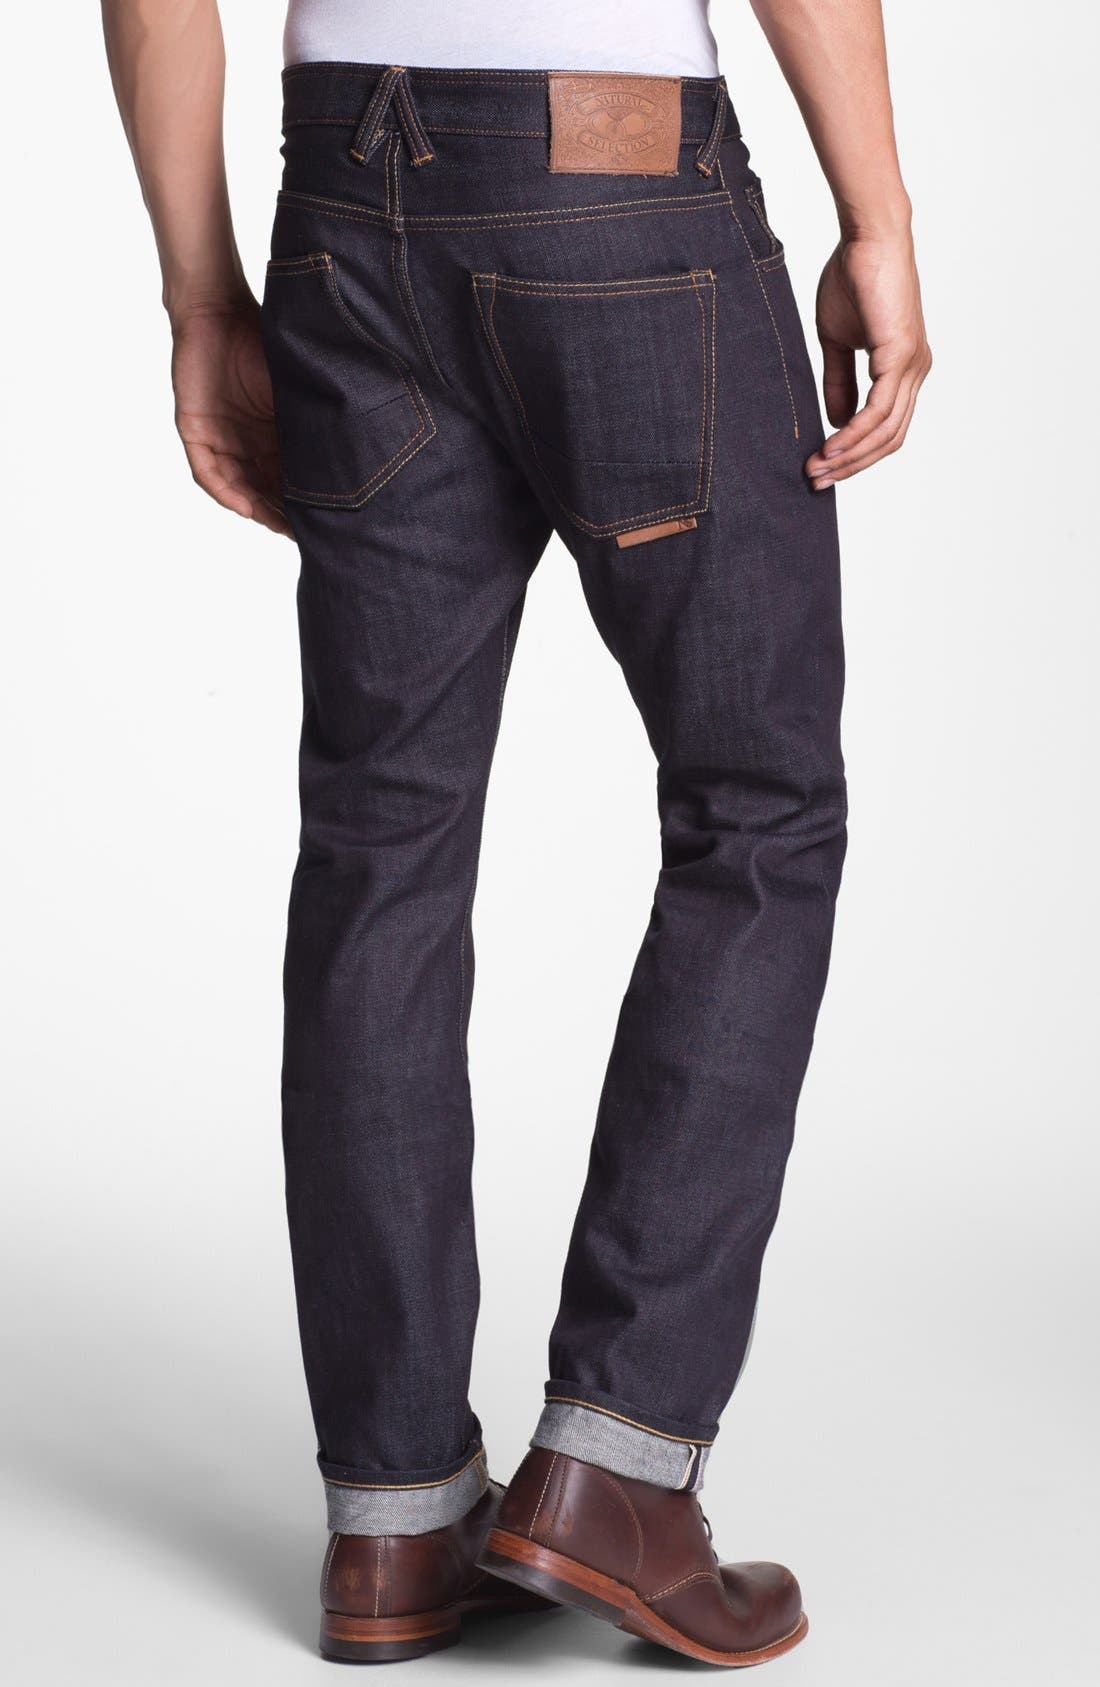 Alternate Image 1 Selected - Natural Selection Denim 'Raw' Narrow Straight Leg Selvedge Jeans (C-Raw)